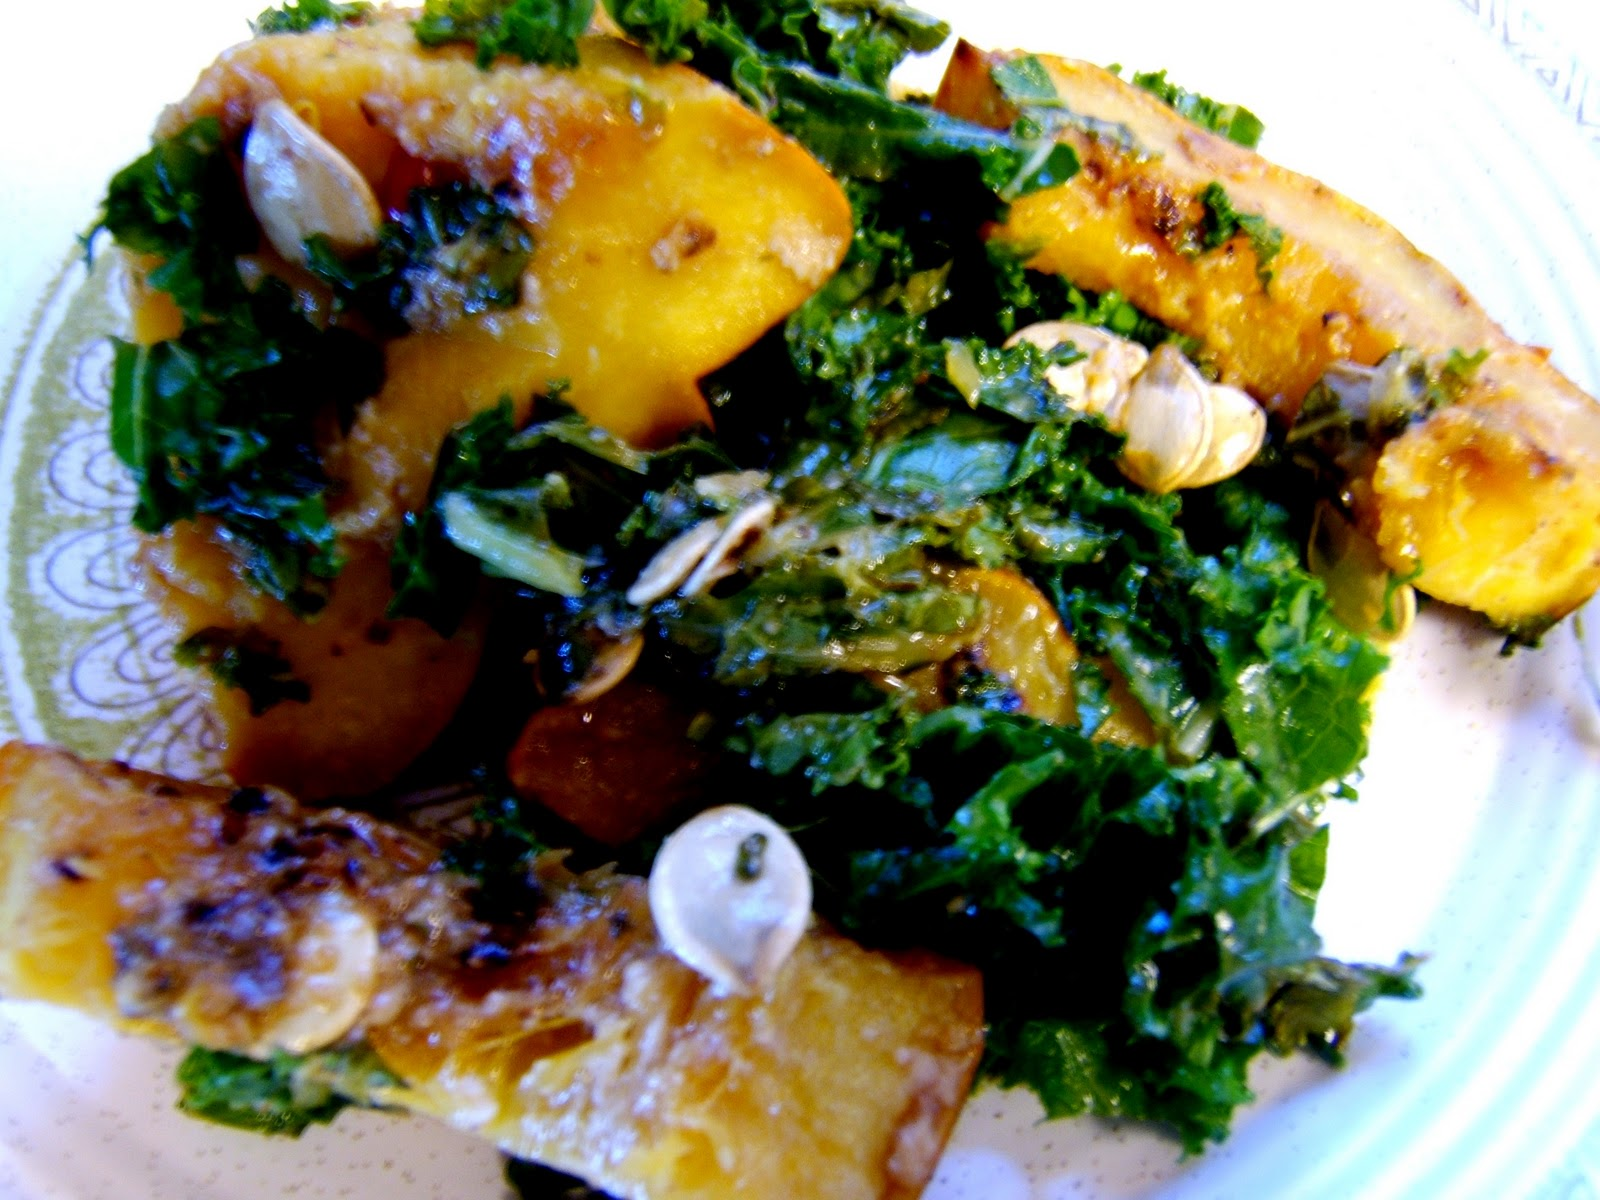 ... : Operation Use Harissa, Phase Two: Miso Harissa Squash and Kale